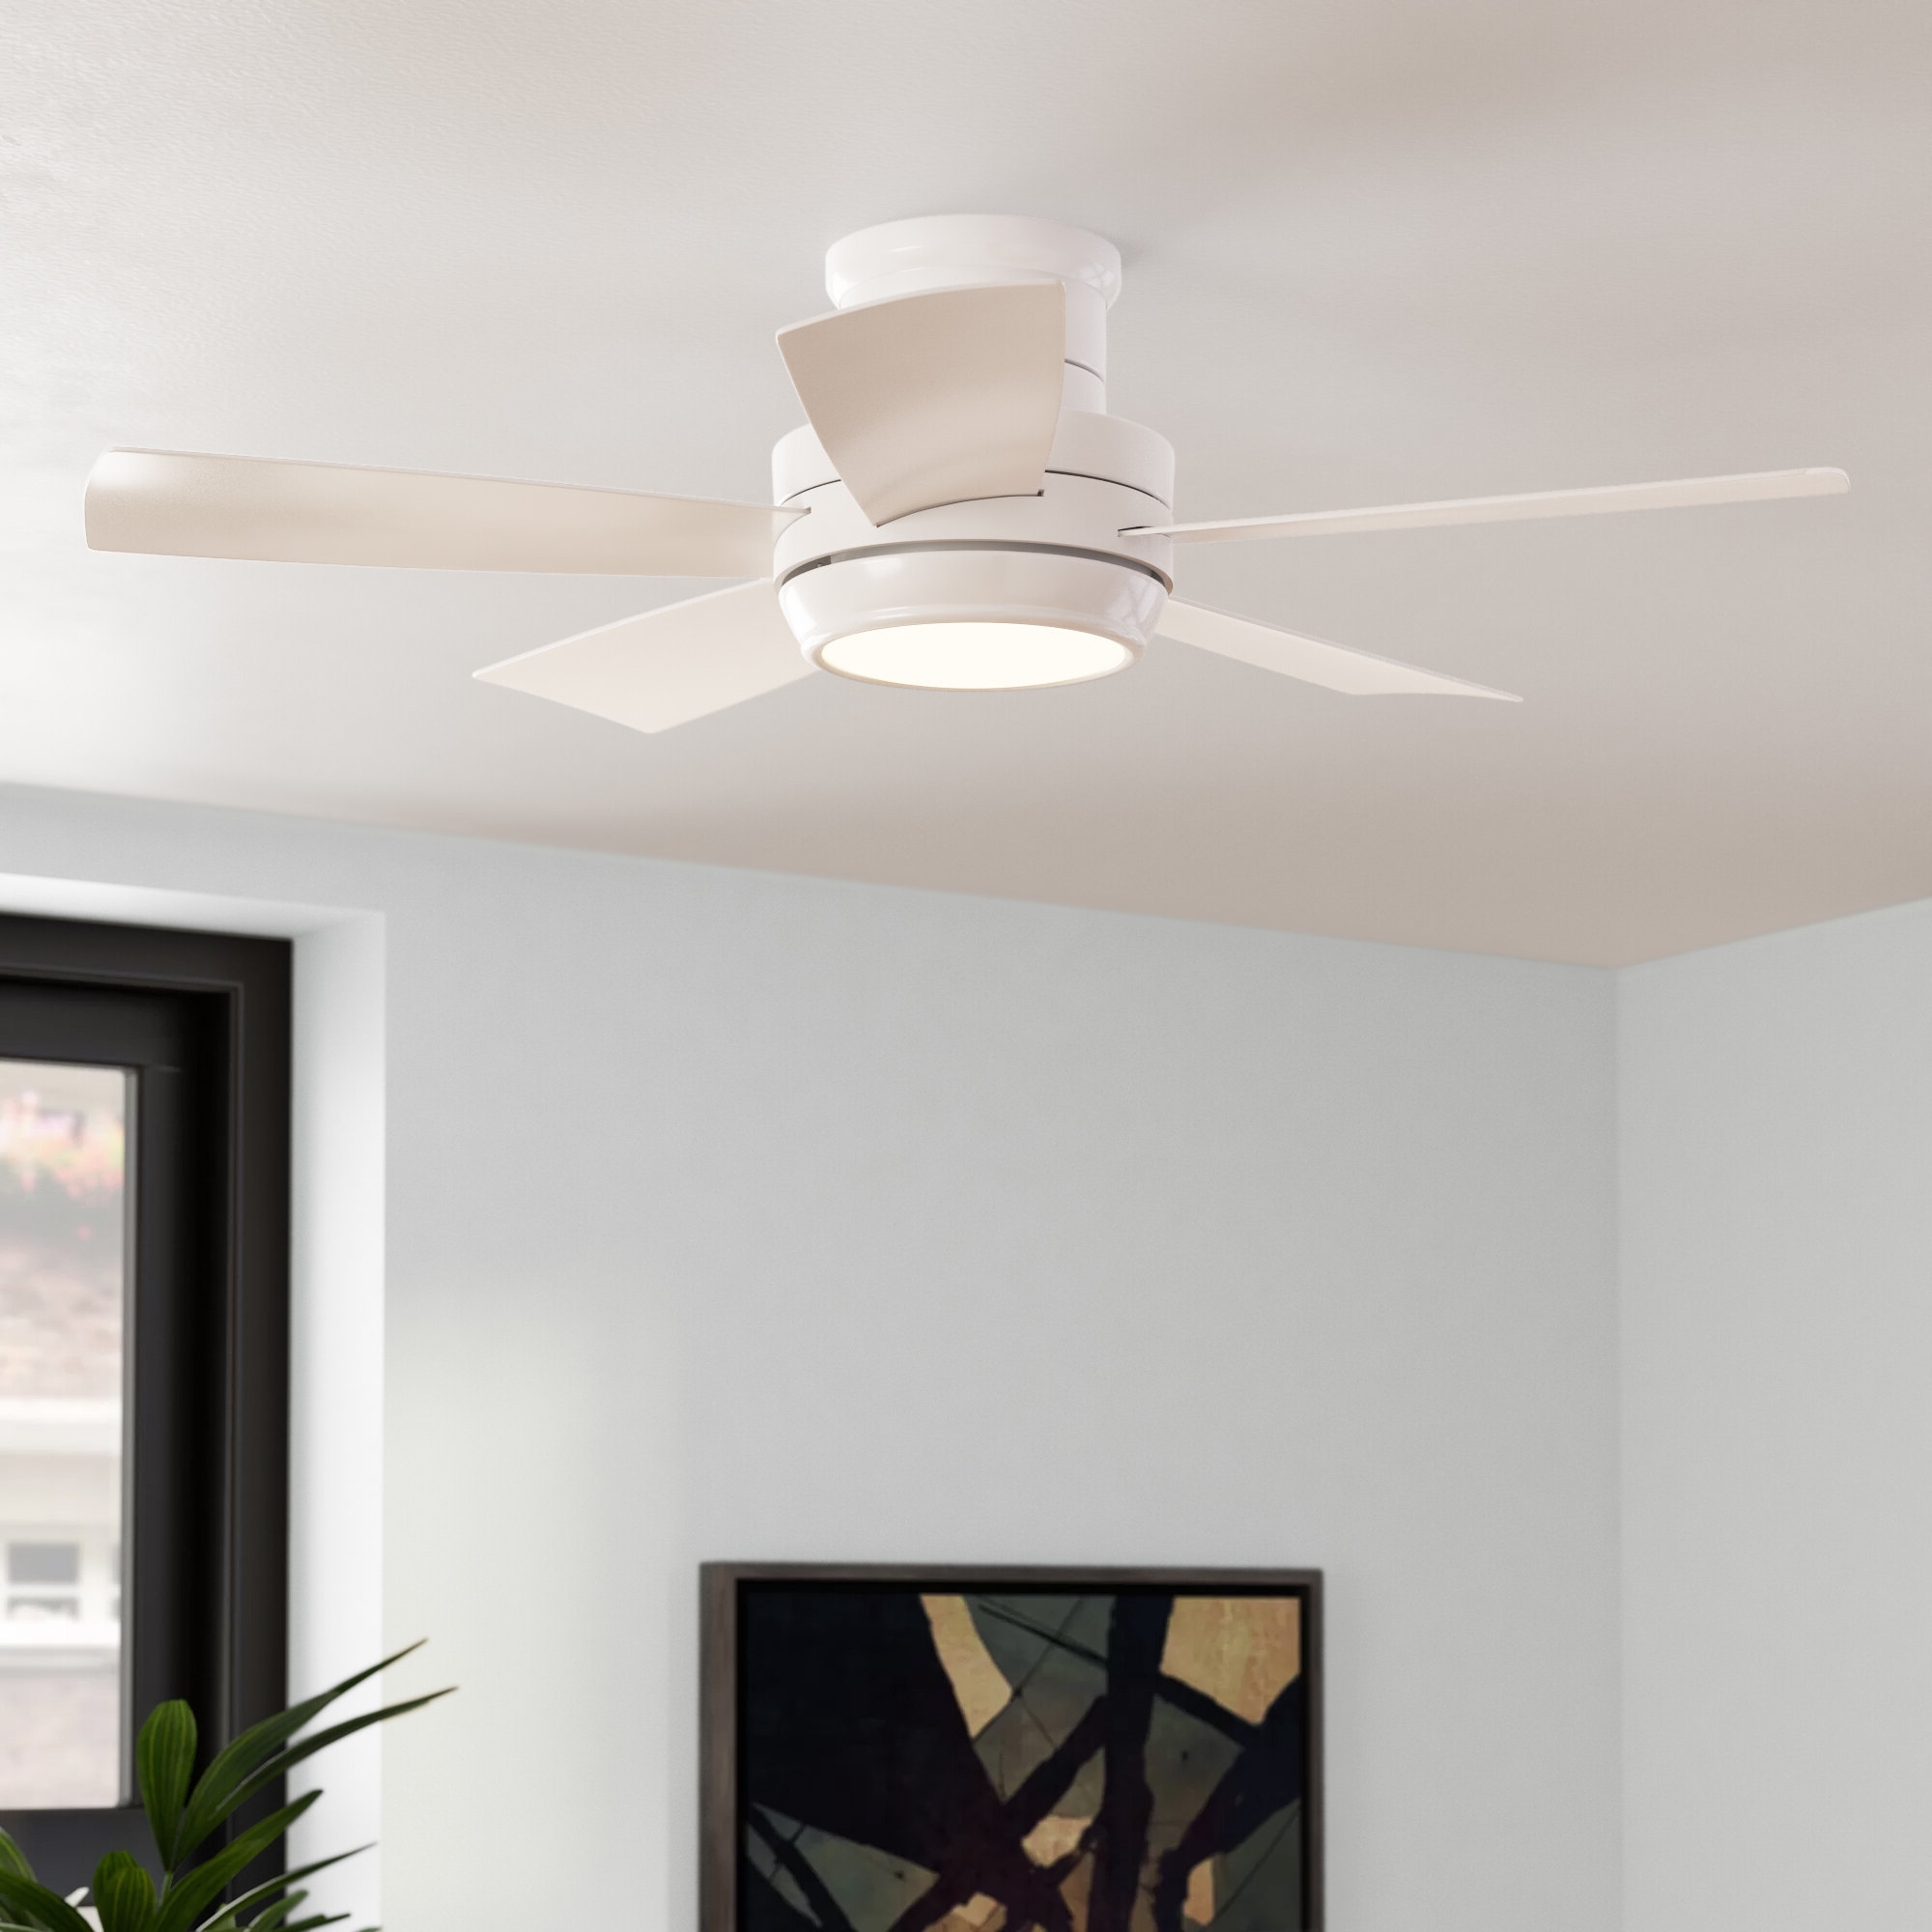 "44"" Cedarton Hugger 5 Blade Led Ceiling Fan, Light Kit Included Throughout Newest Cedarton 5 Blade Led Ceiling Fans (View 2 of 20)"